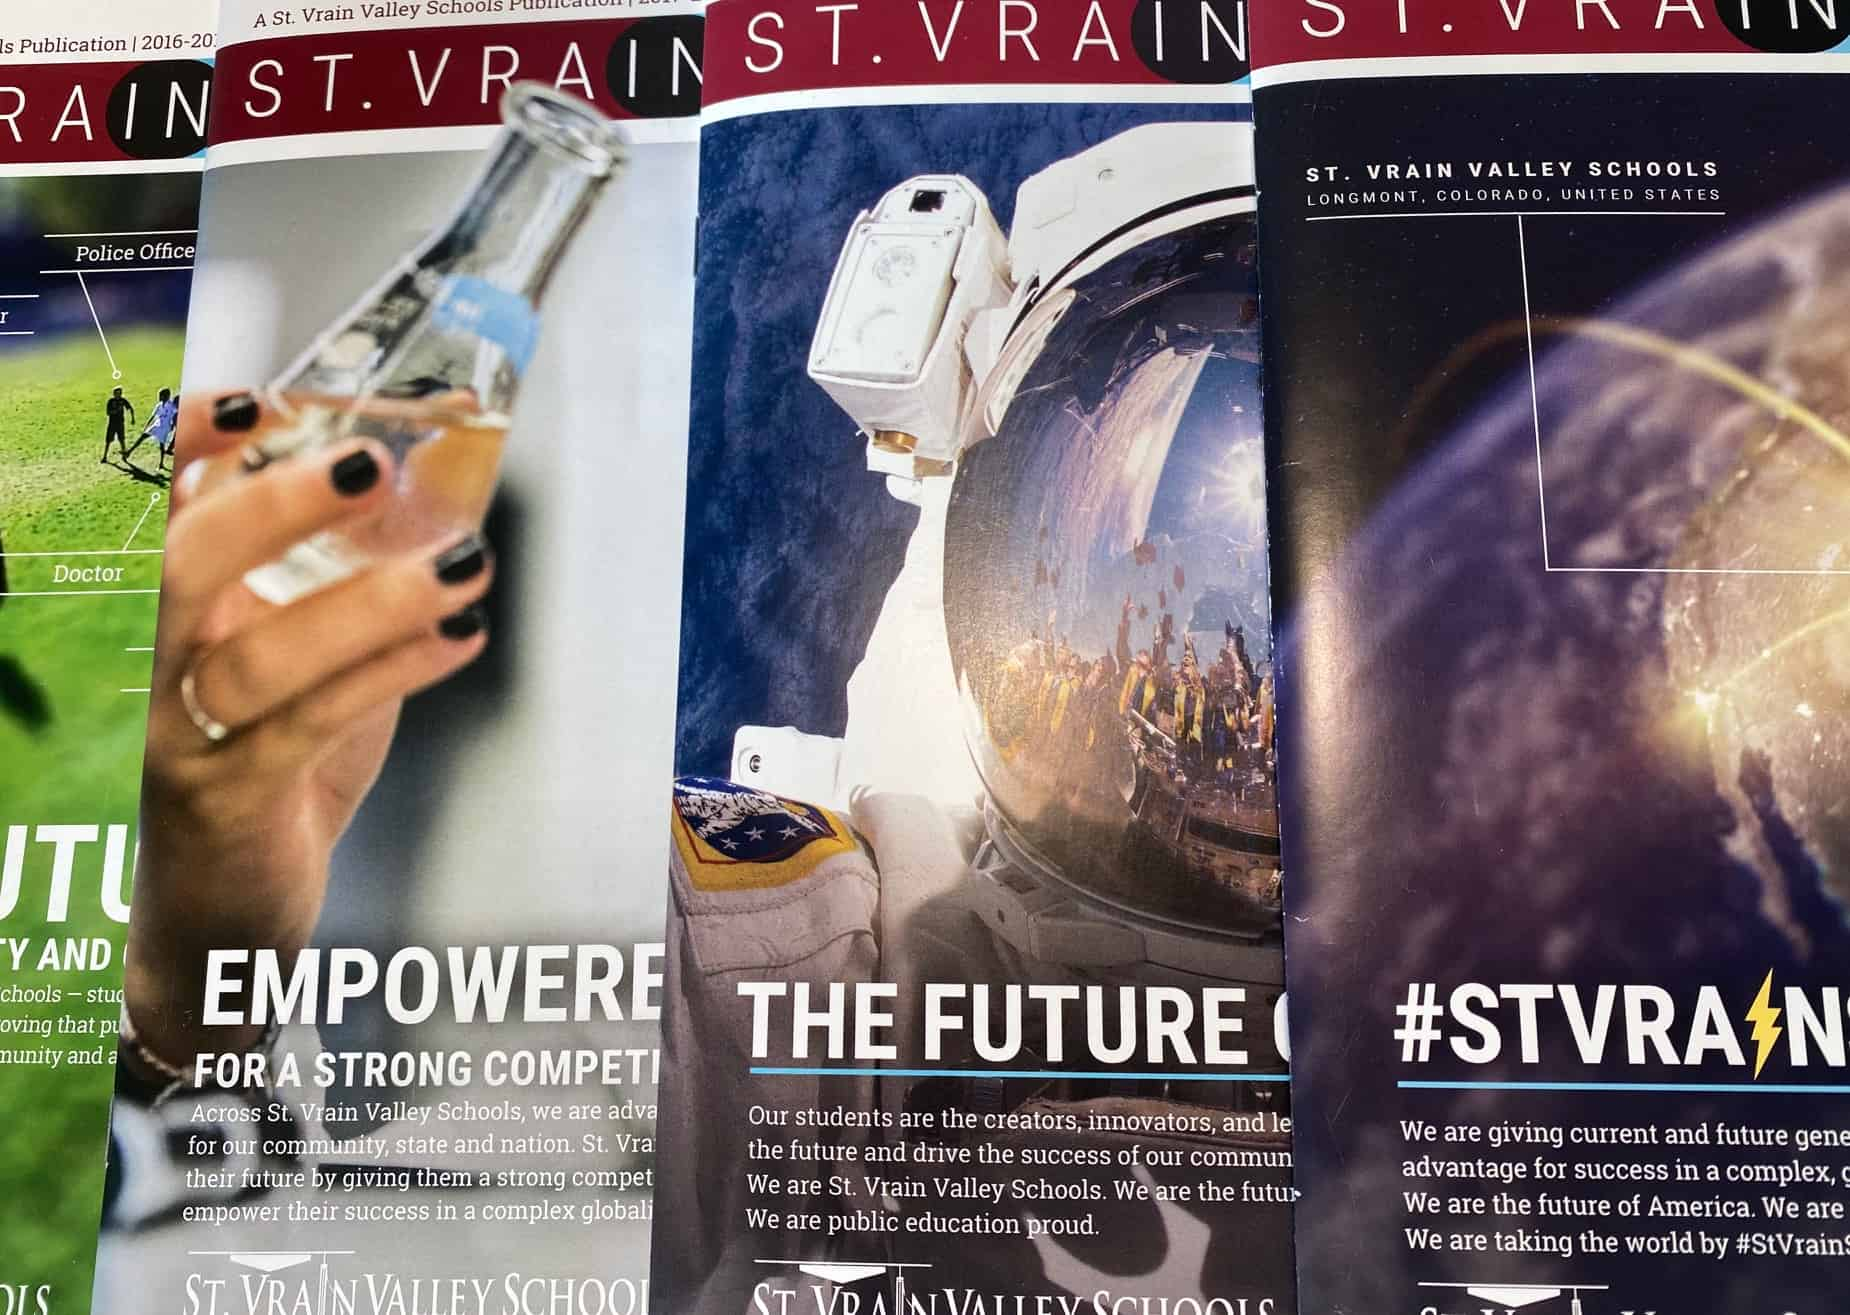 Editions of St. Vrainnovation Magazine